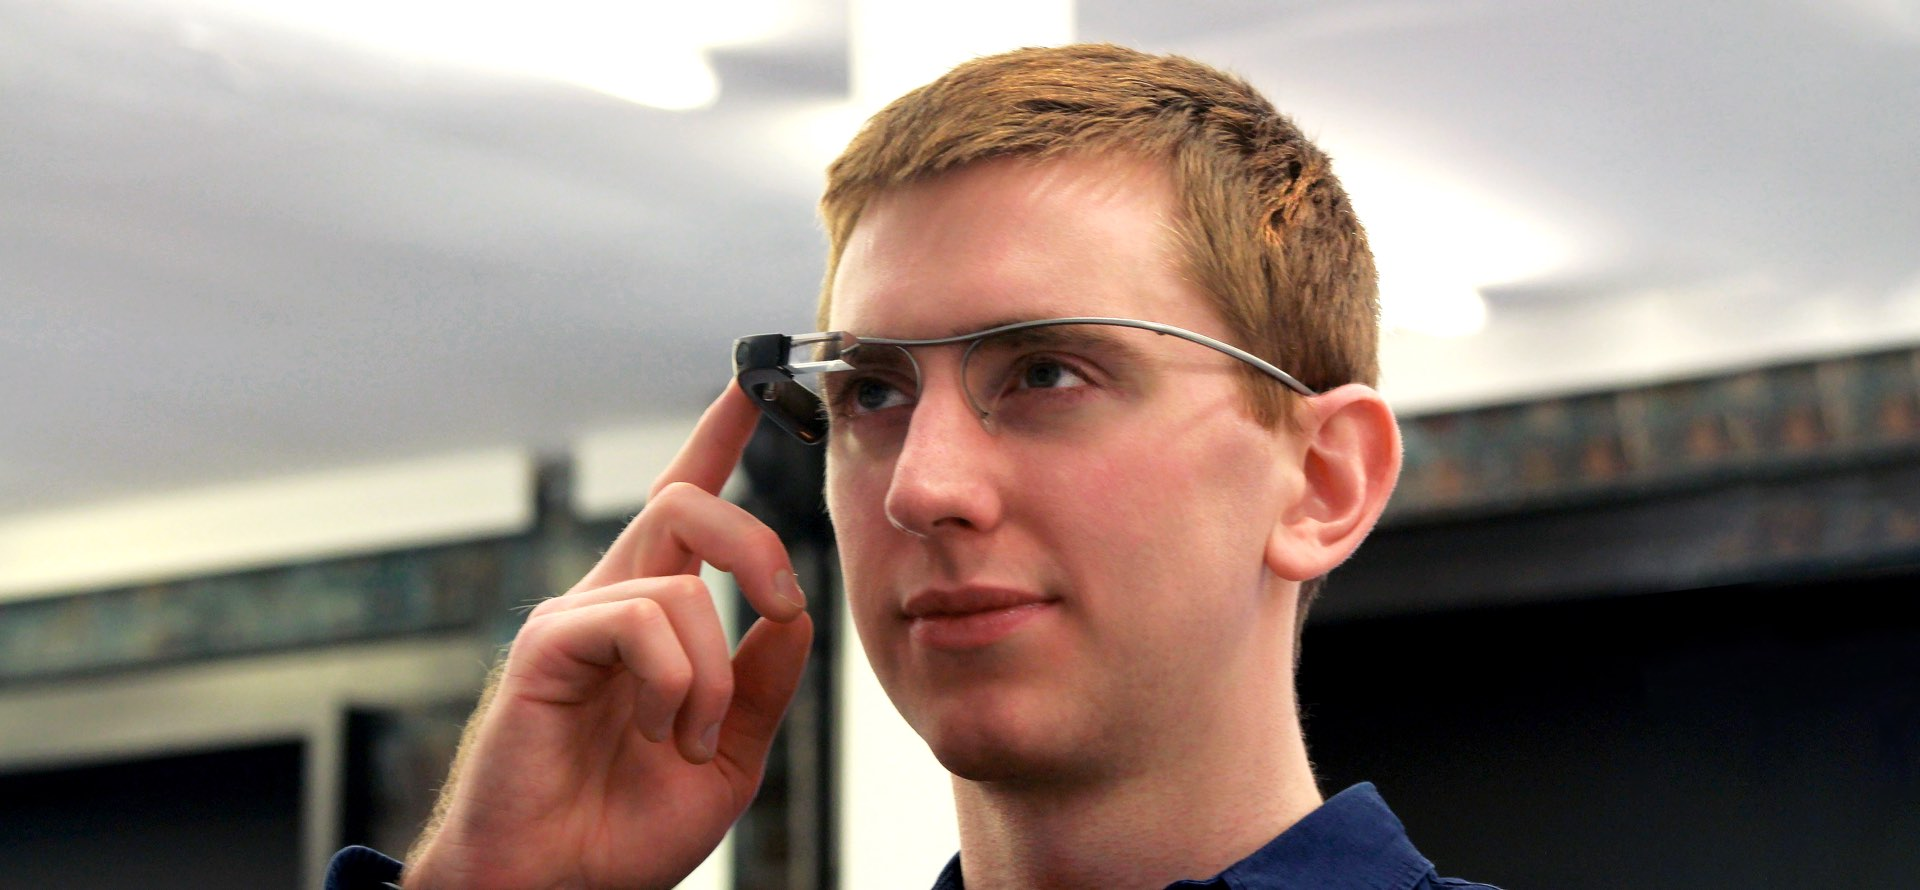 Close up image of a man's face wearing google glass